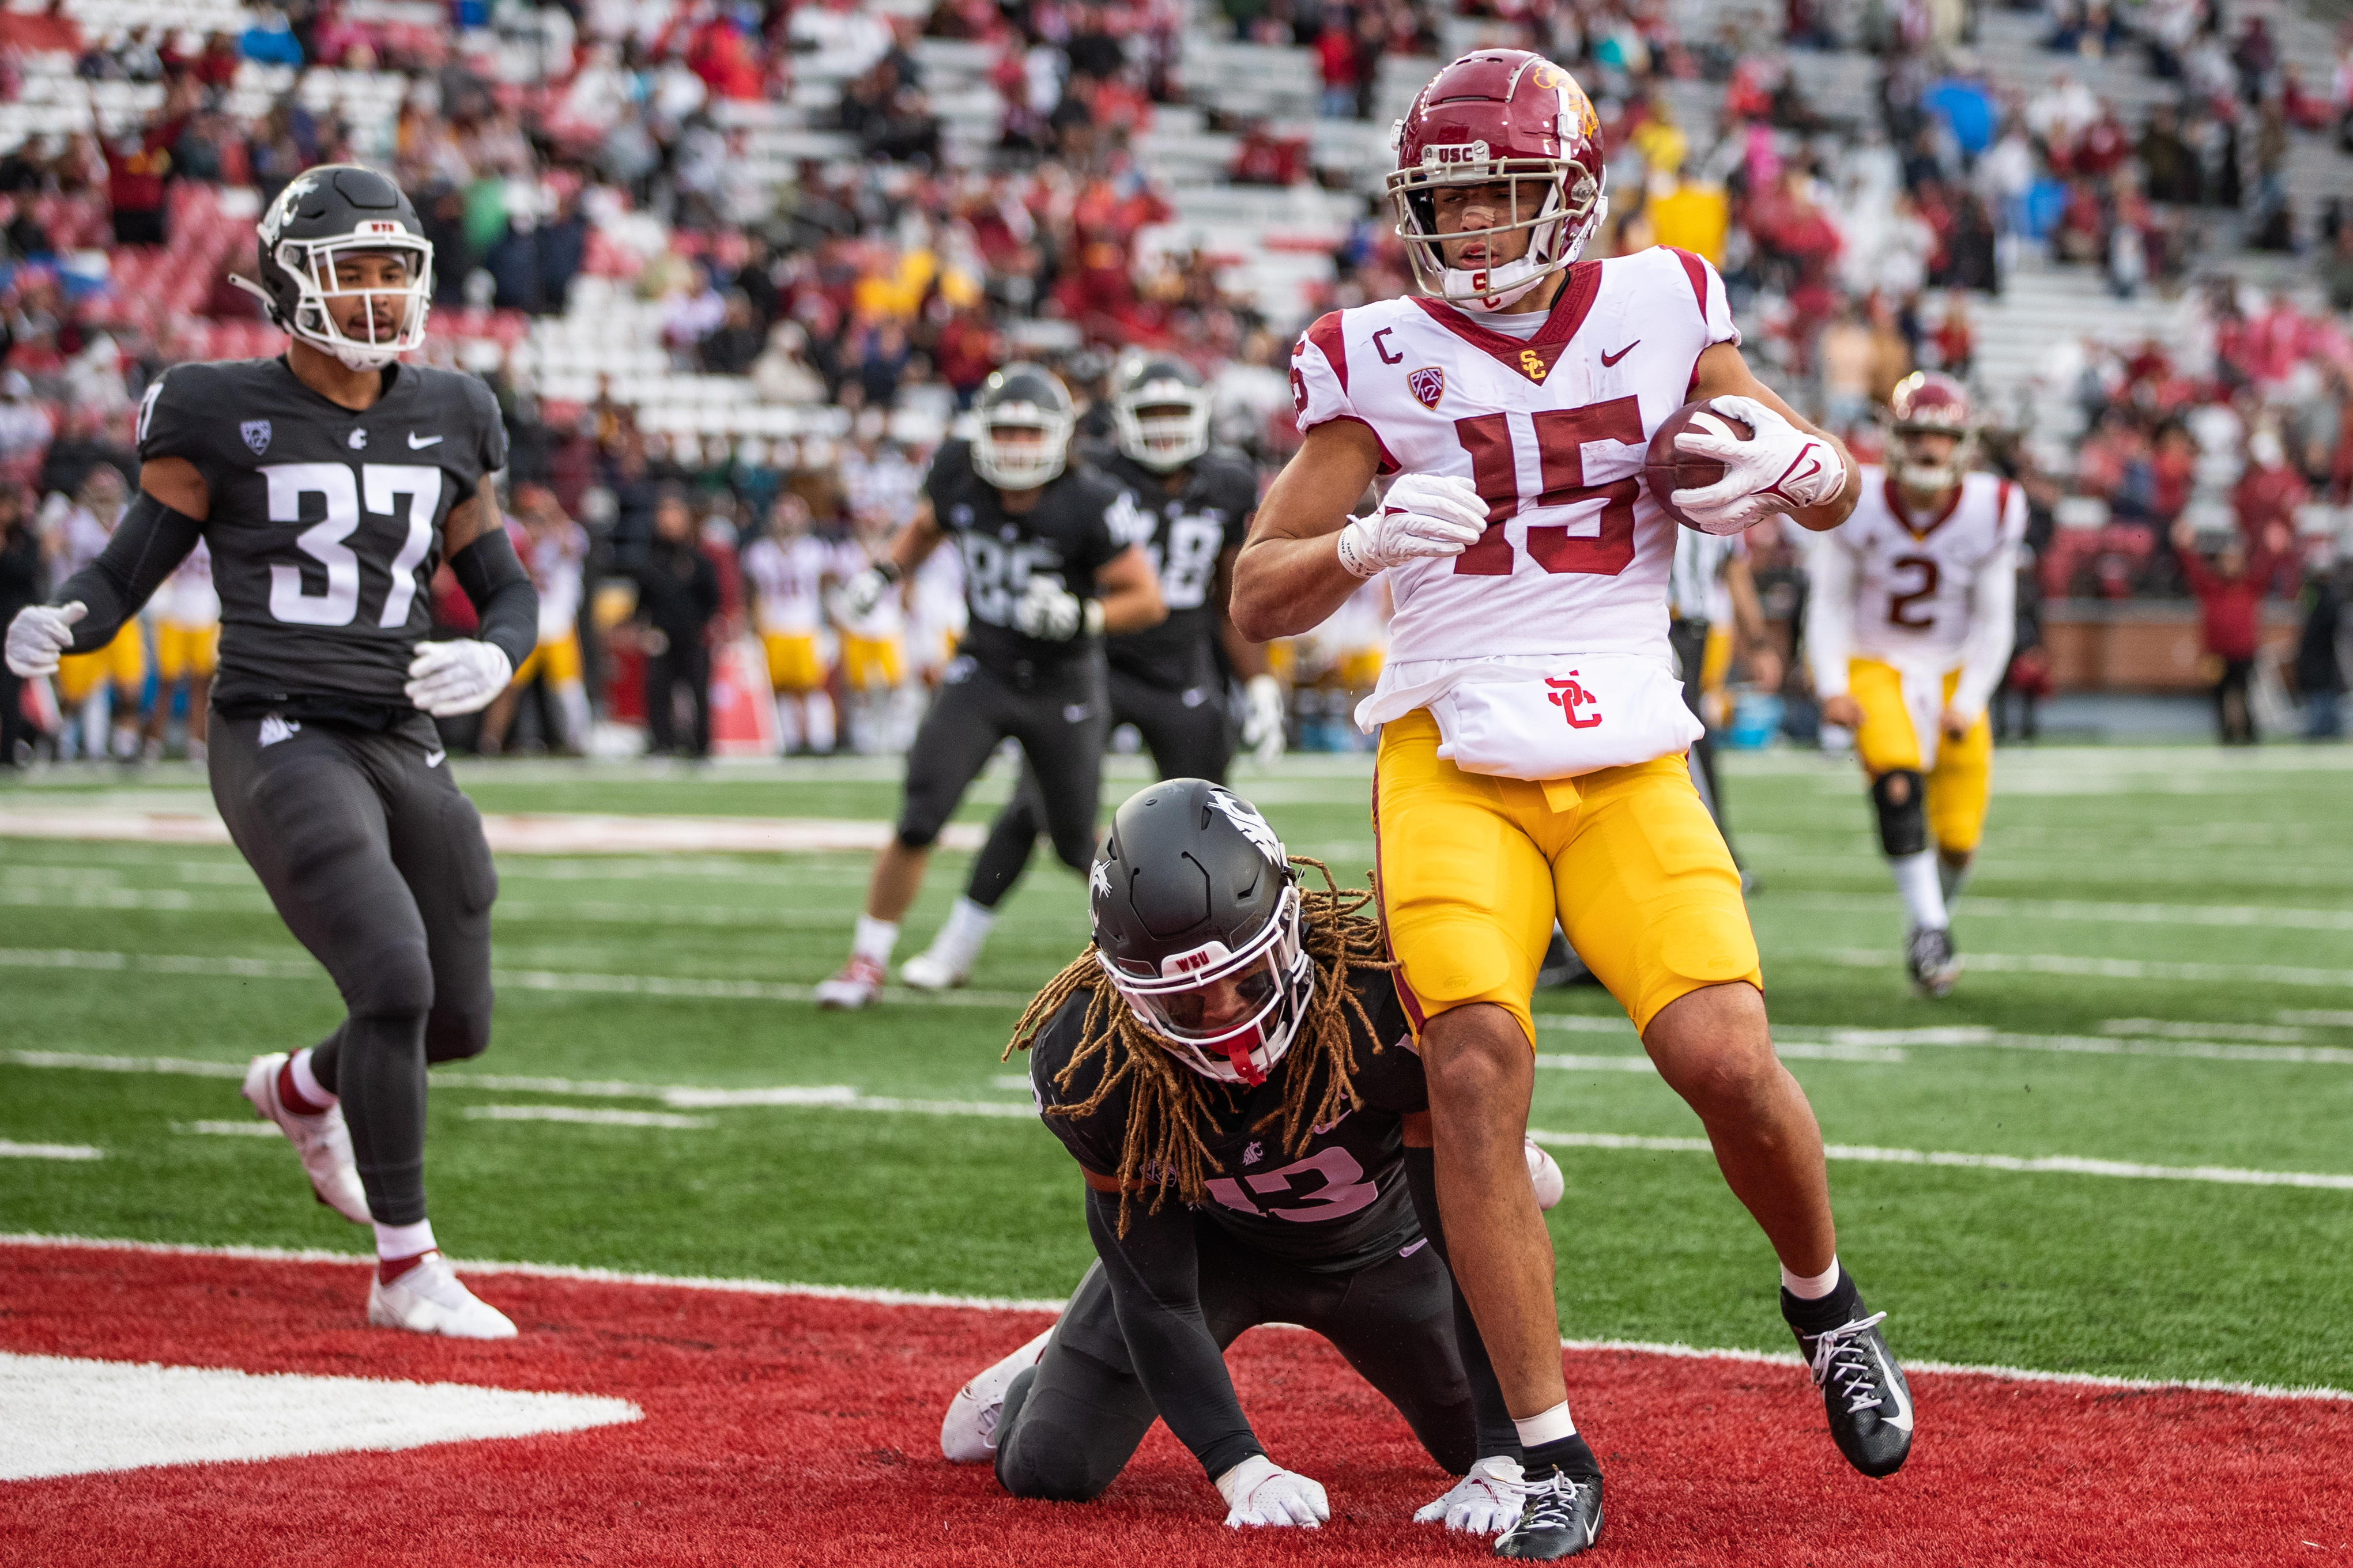 PULLMAN, WA - SEPTEMBER 18: USC receiver Drake London (15) scores a touchdown in the second half of a PAC 12 conference matchup between the USC Trojans and the Washington State Cougars on September 18, 2021, at Martin Stadium in Pullman, WA.